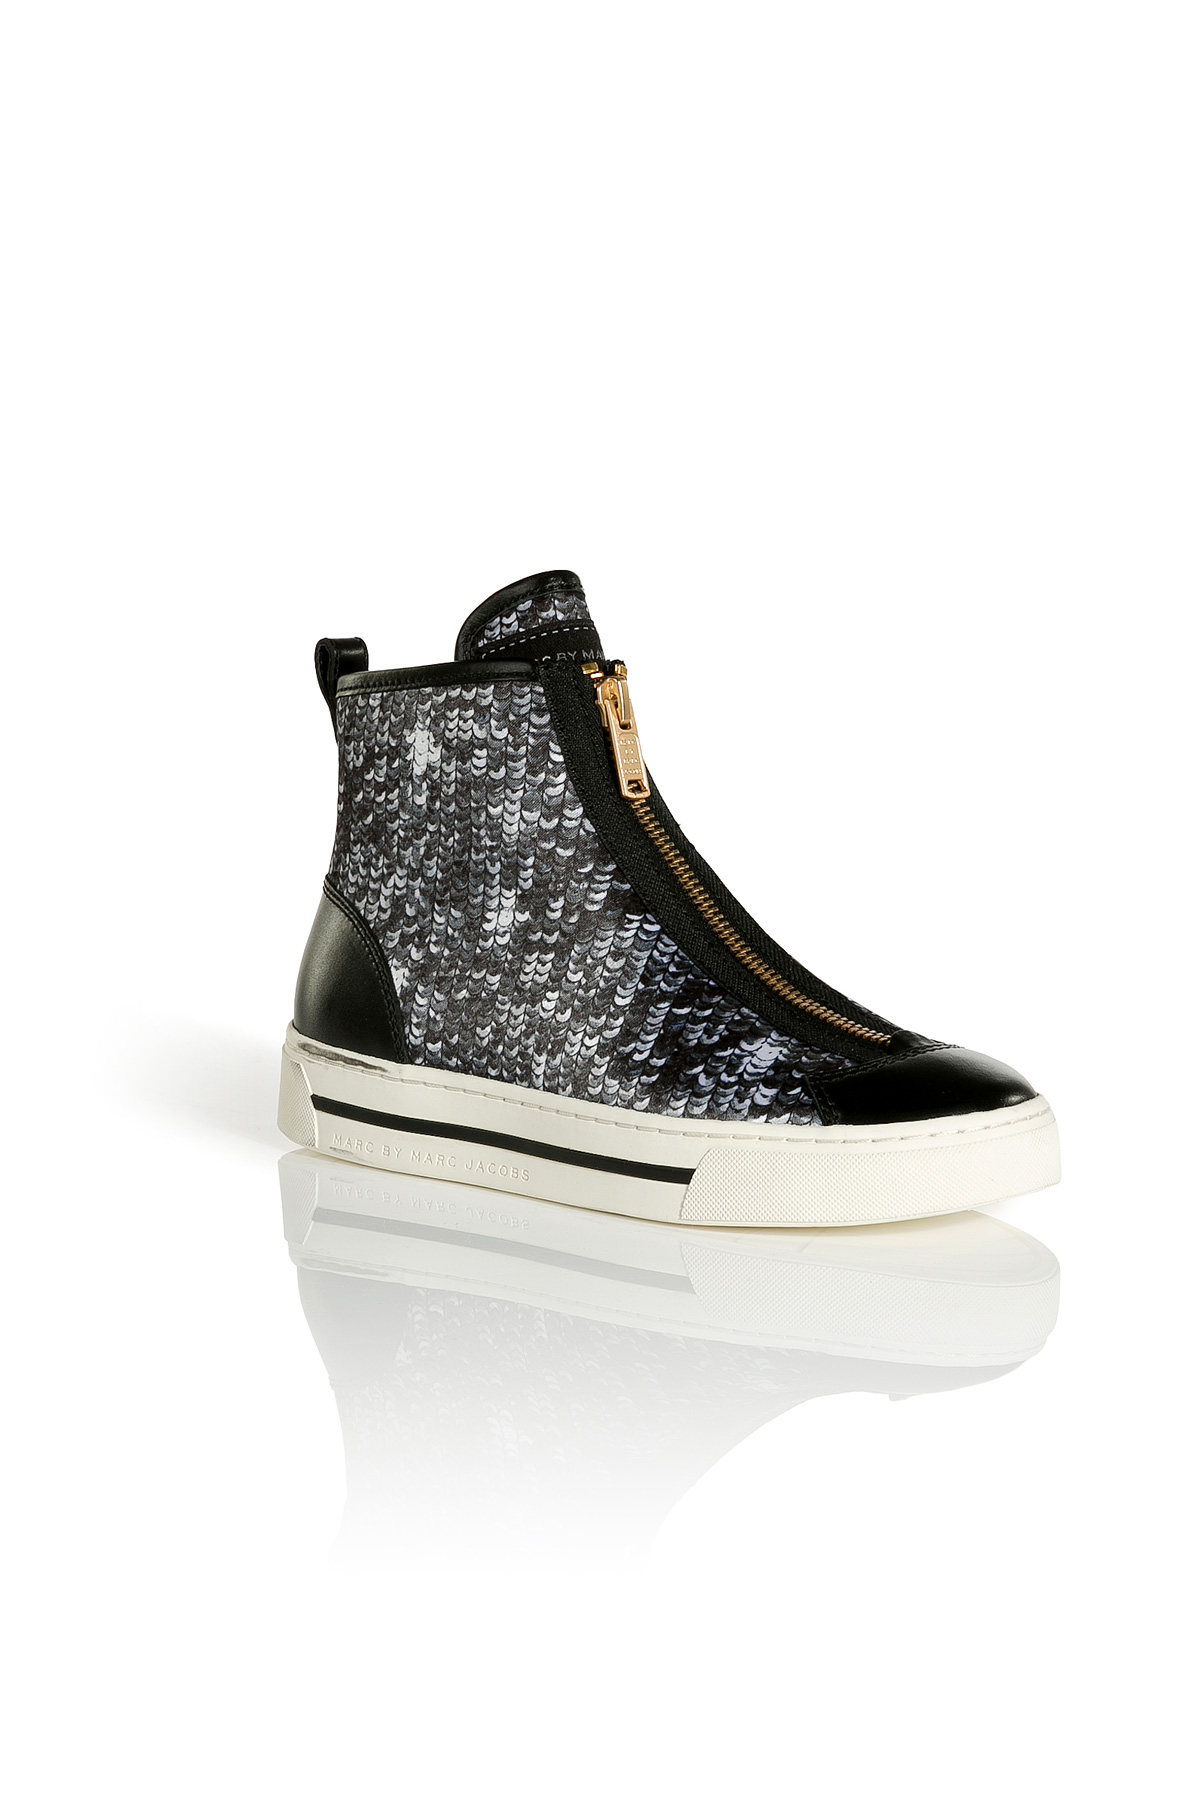 Marc By Marc Jacobs Satin And Sequin Hightop Sneakers In